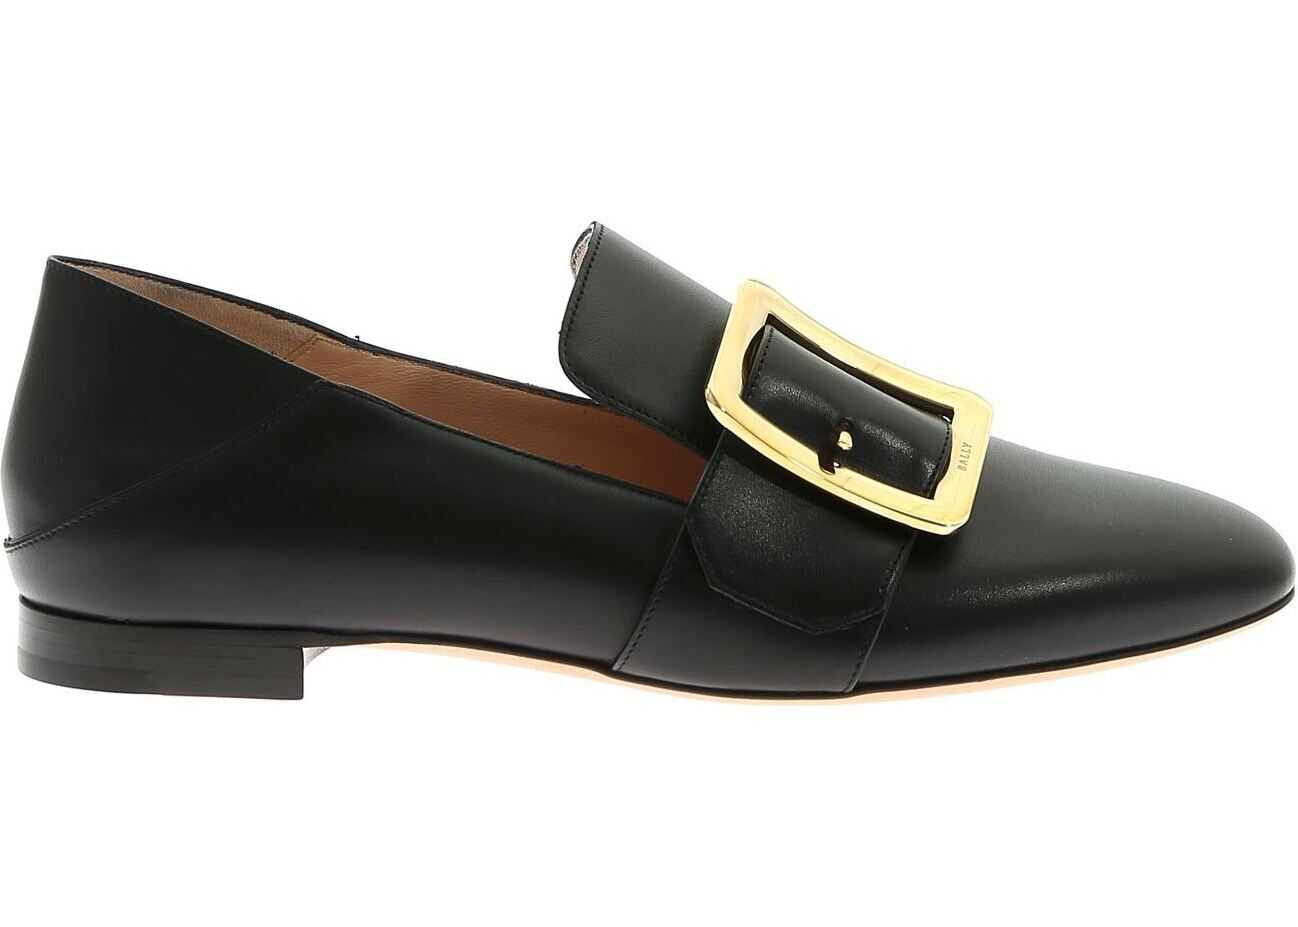 Bally Janelle Shoes In Black Black